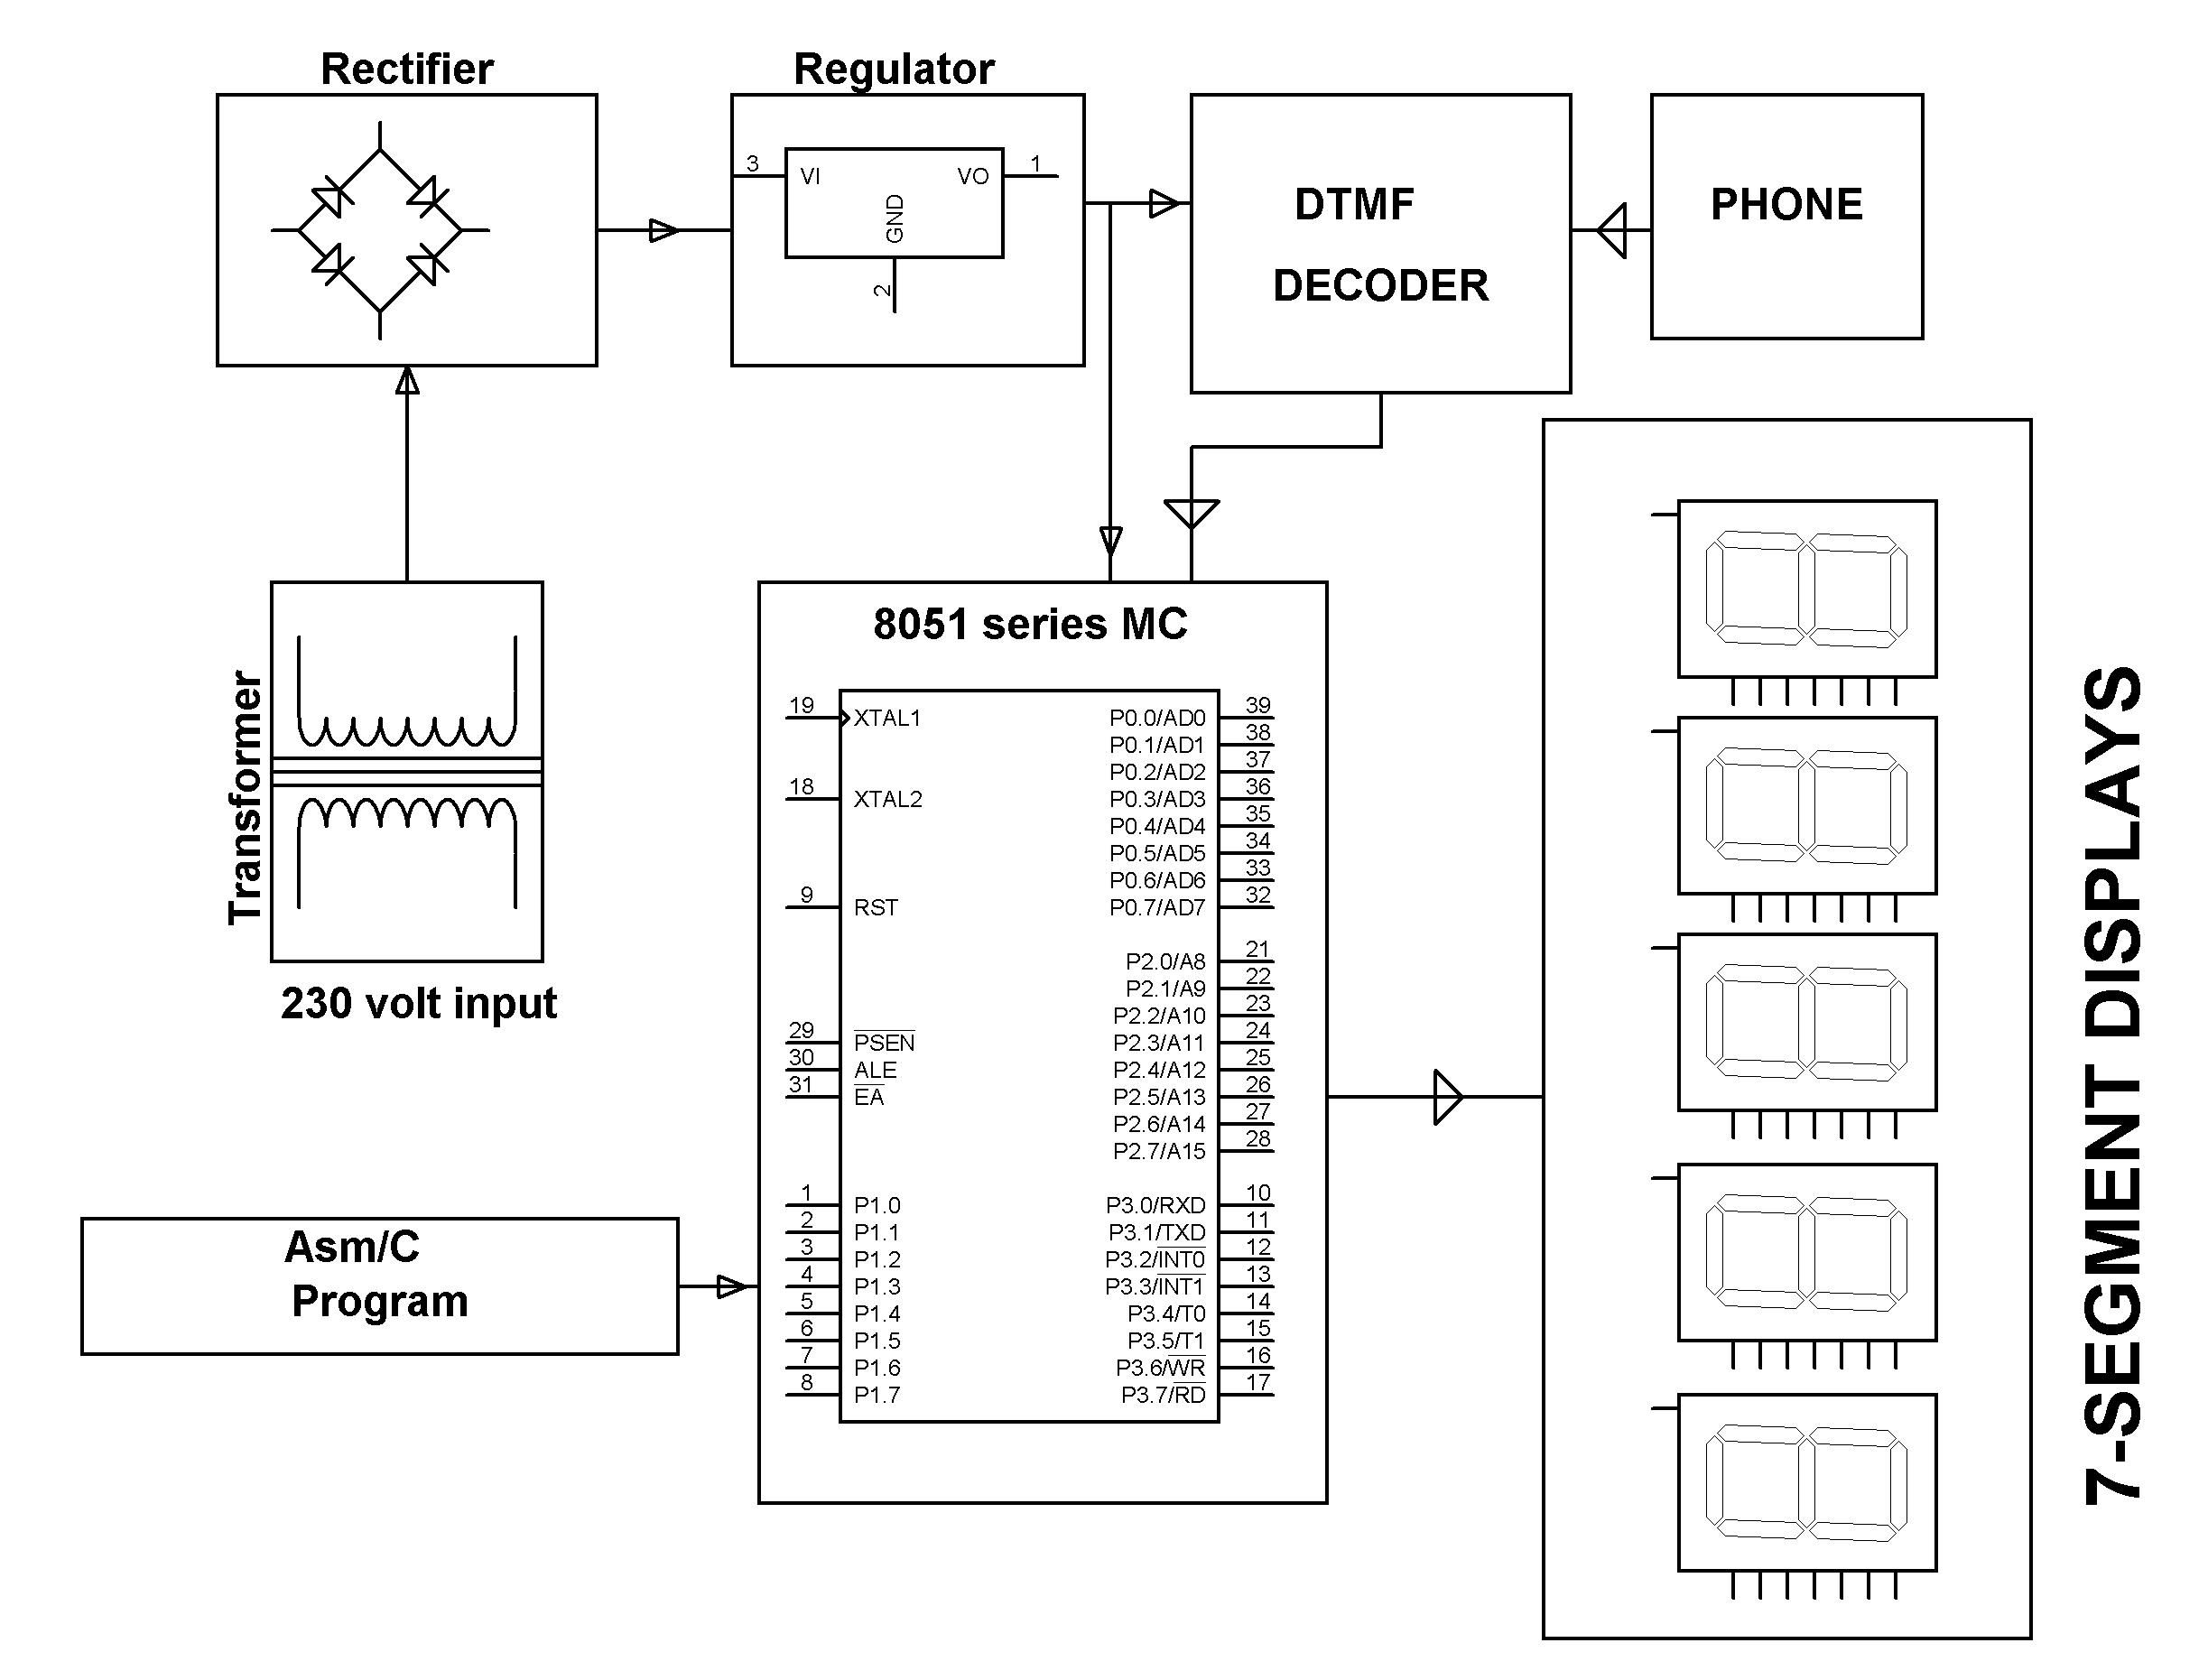 block diagram of  dtmf based dailed telephone numbers display on seven segment display